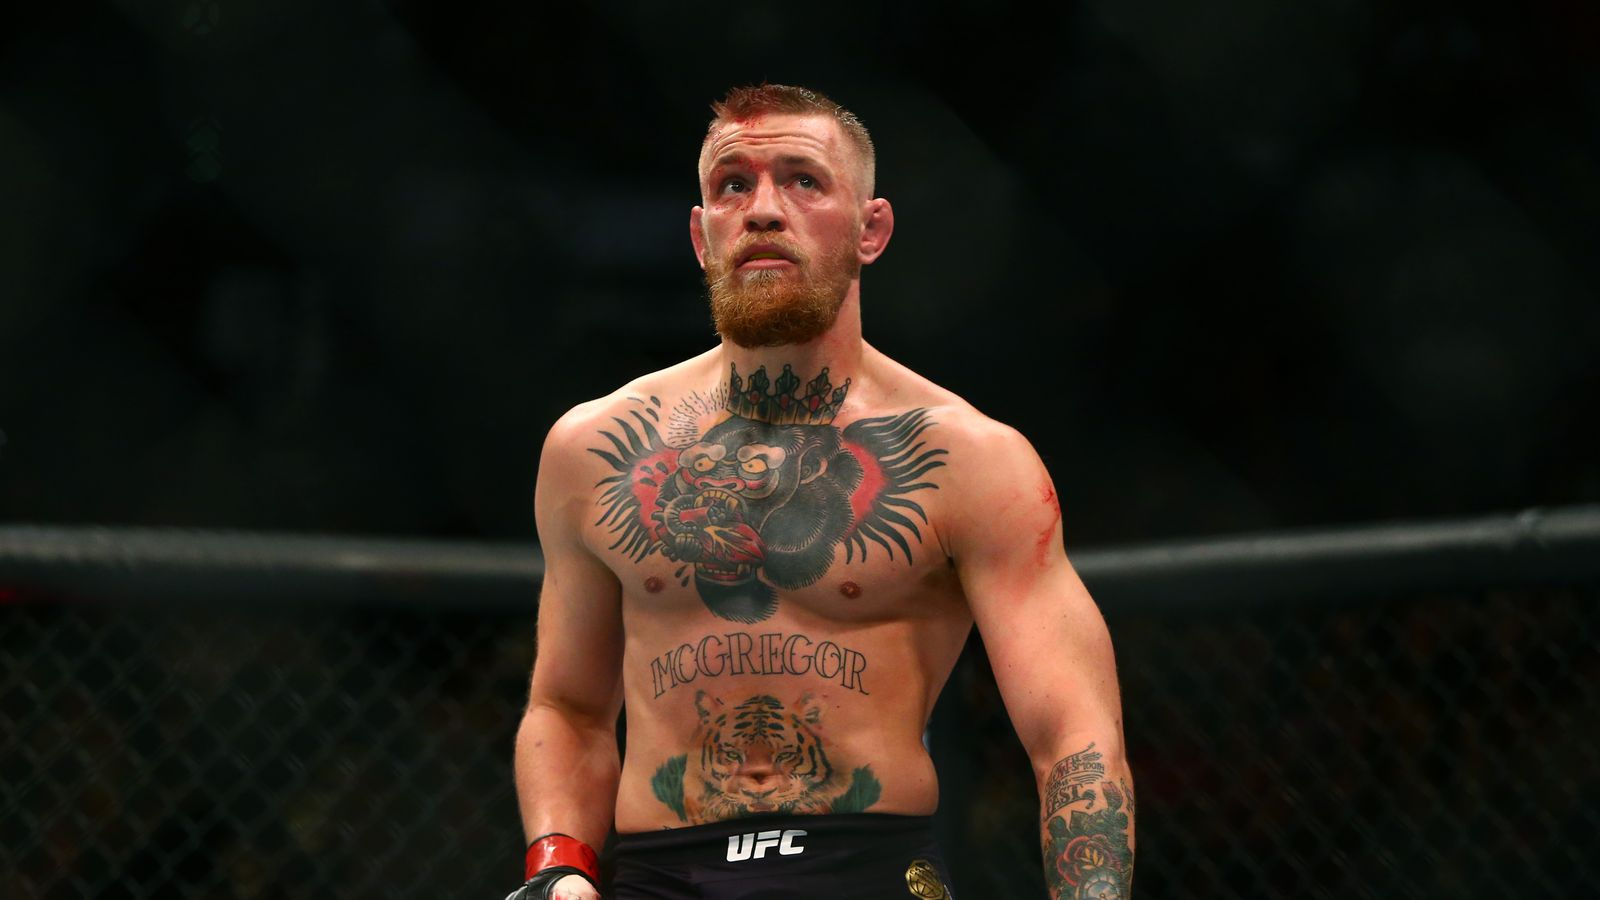 NSAC director confirms Conor McGregor was only fined $75,000, says 'media got it wrong'